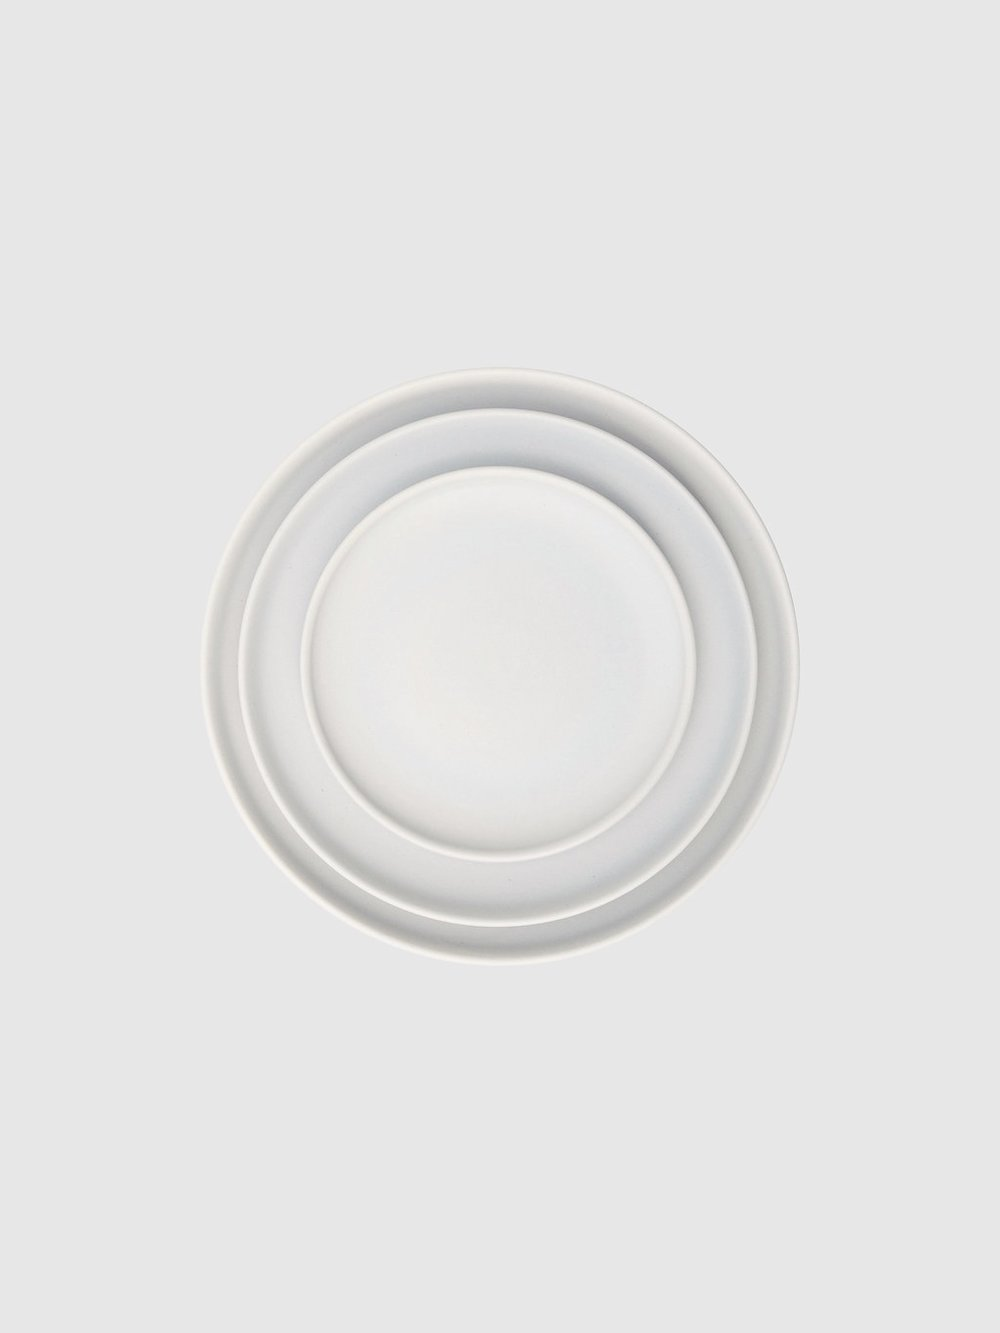 An artisanal flair with clean lines and a chic matte finish, adds simplicity and a modern aesthetic to this stylish earthenware.